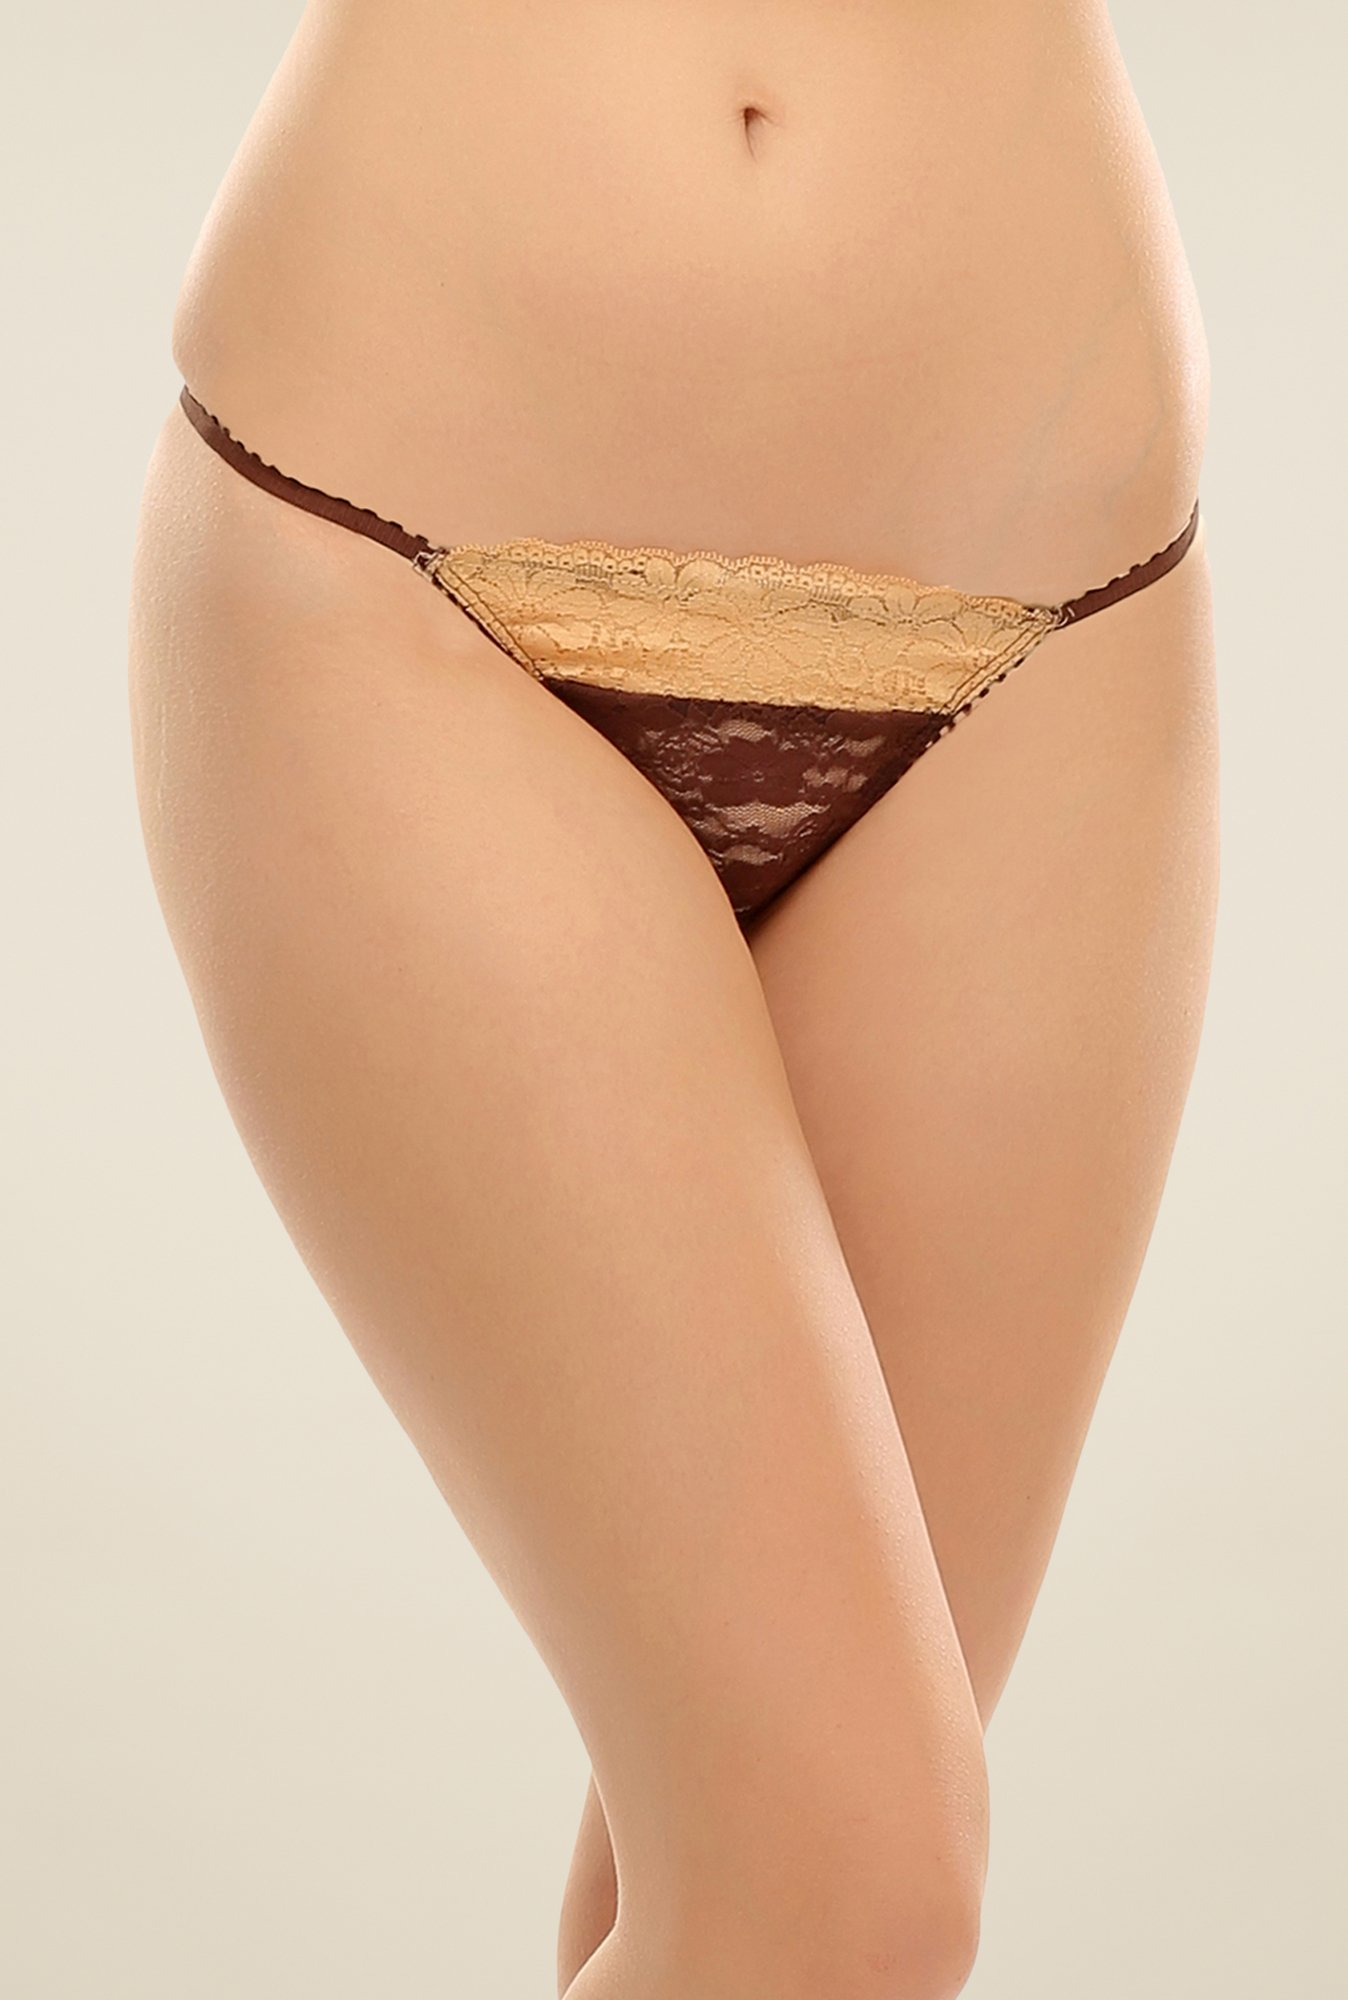 Clovia Brown & Beige Lace Thong Panty